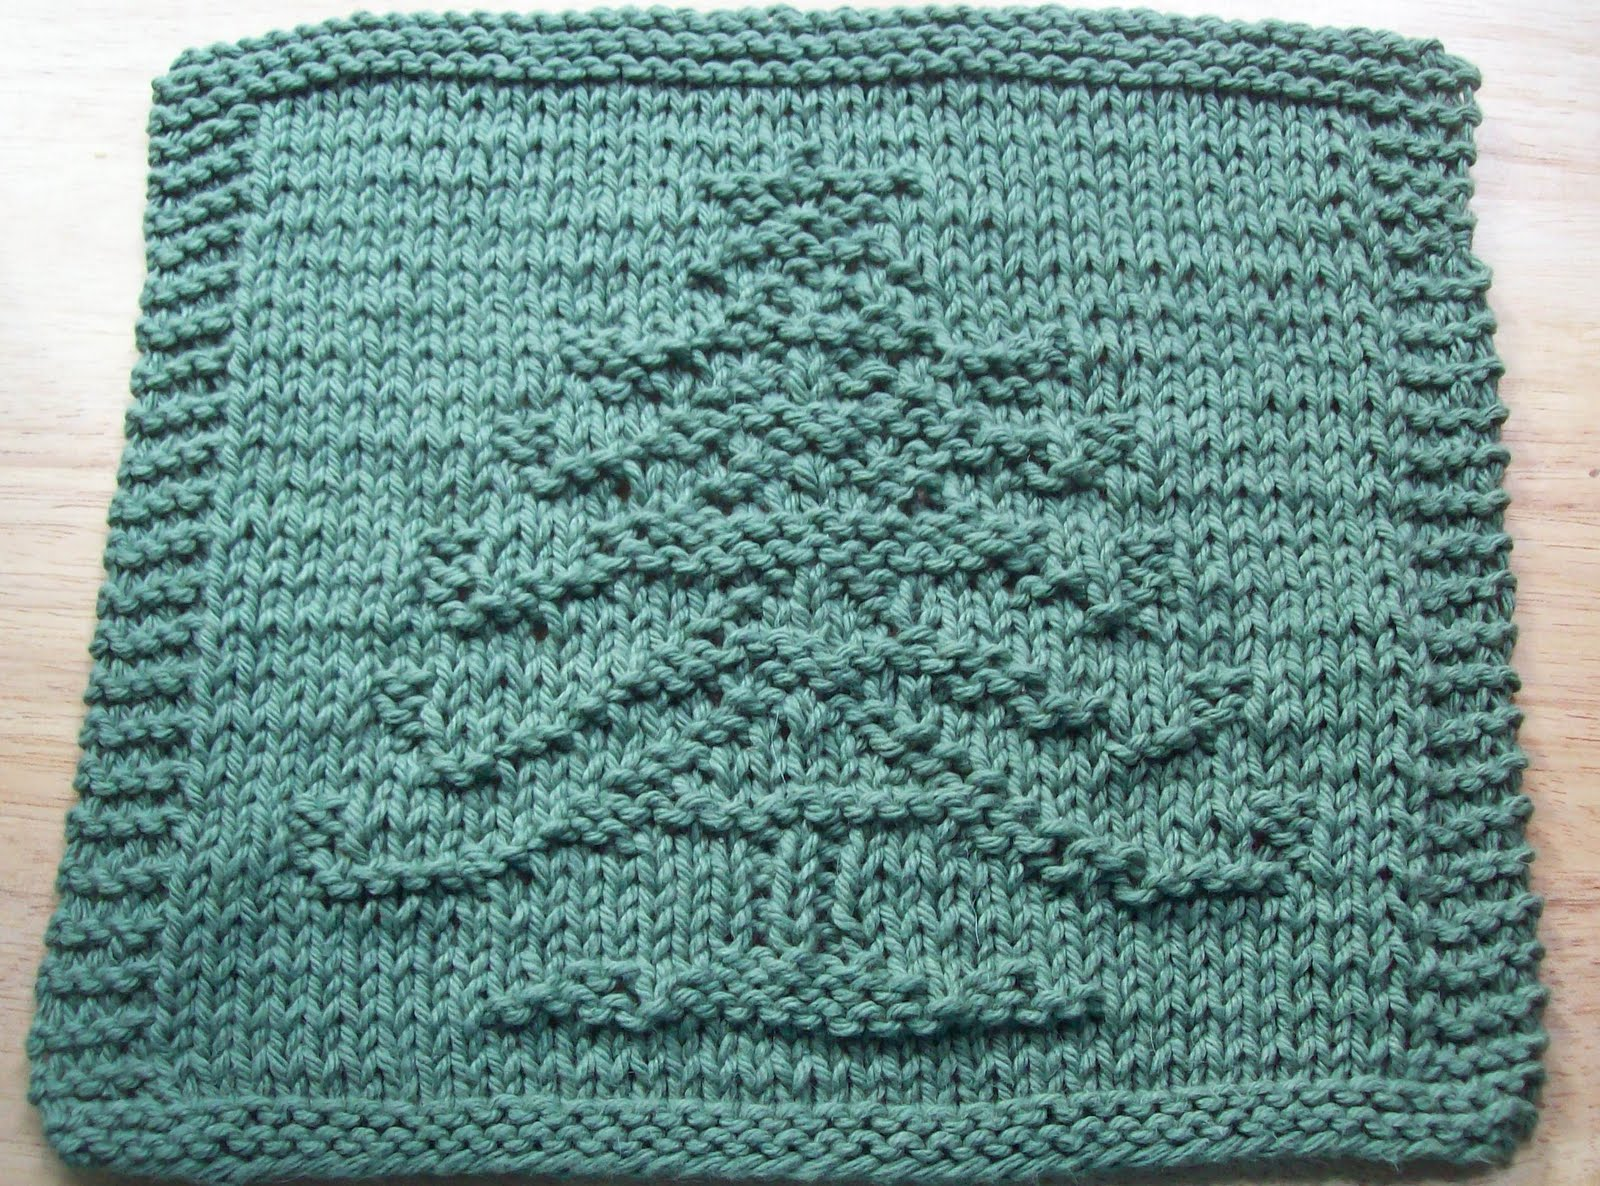 Dish Cloth Knitting Pattern : DigKnitty Designs: Another Christmas Tree Knit Dishcloth Pattern